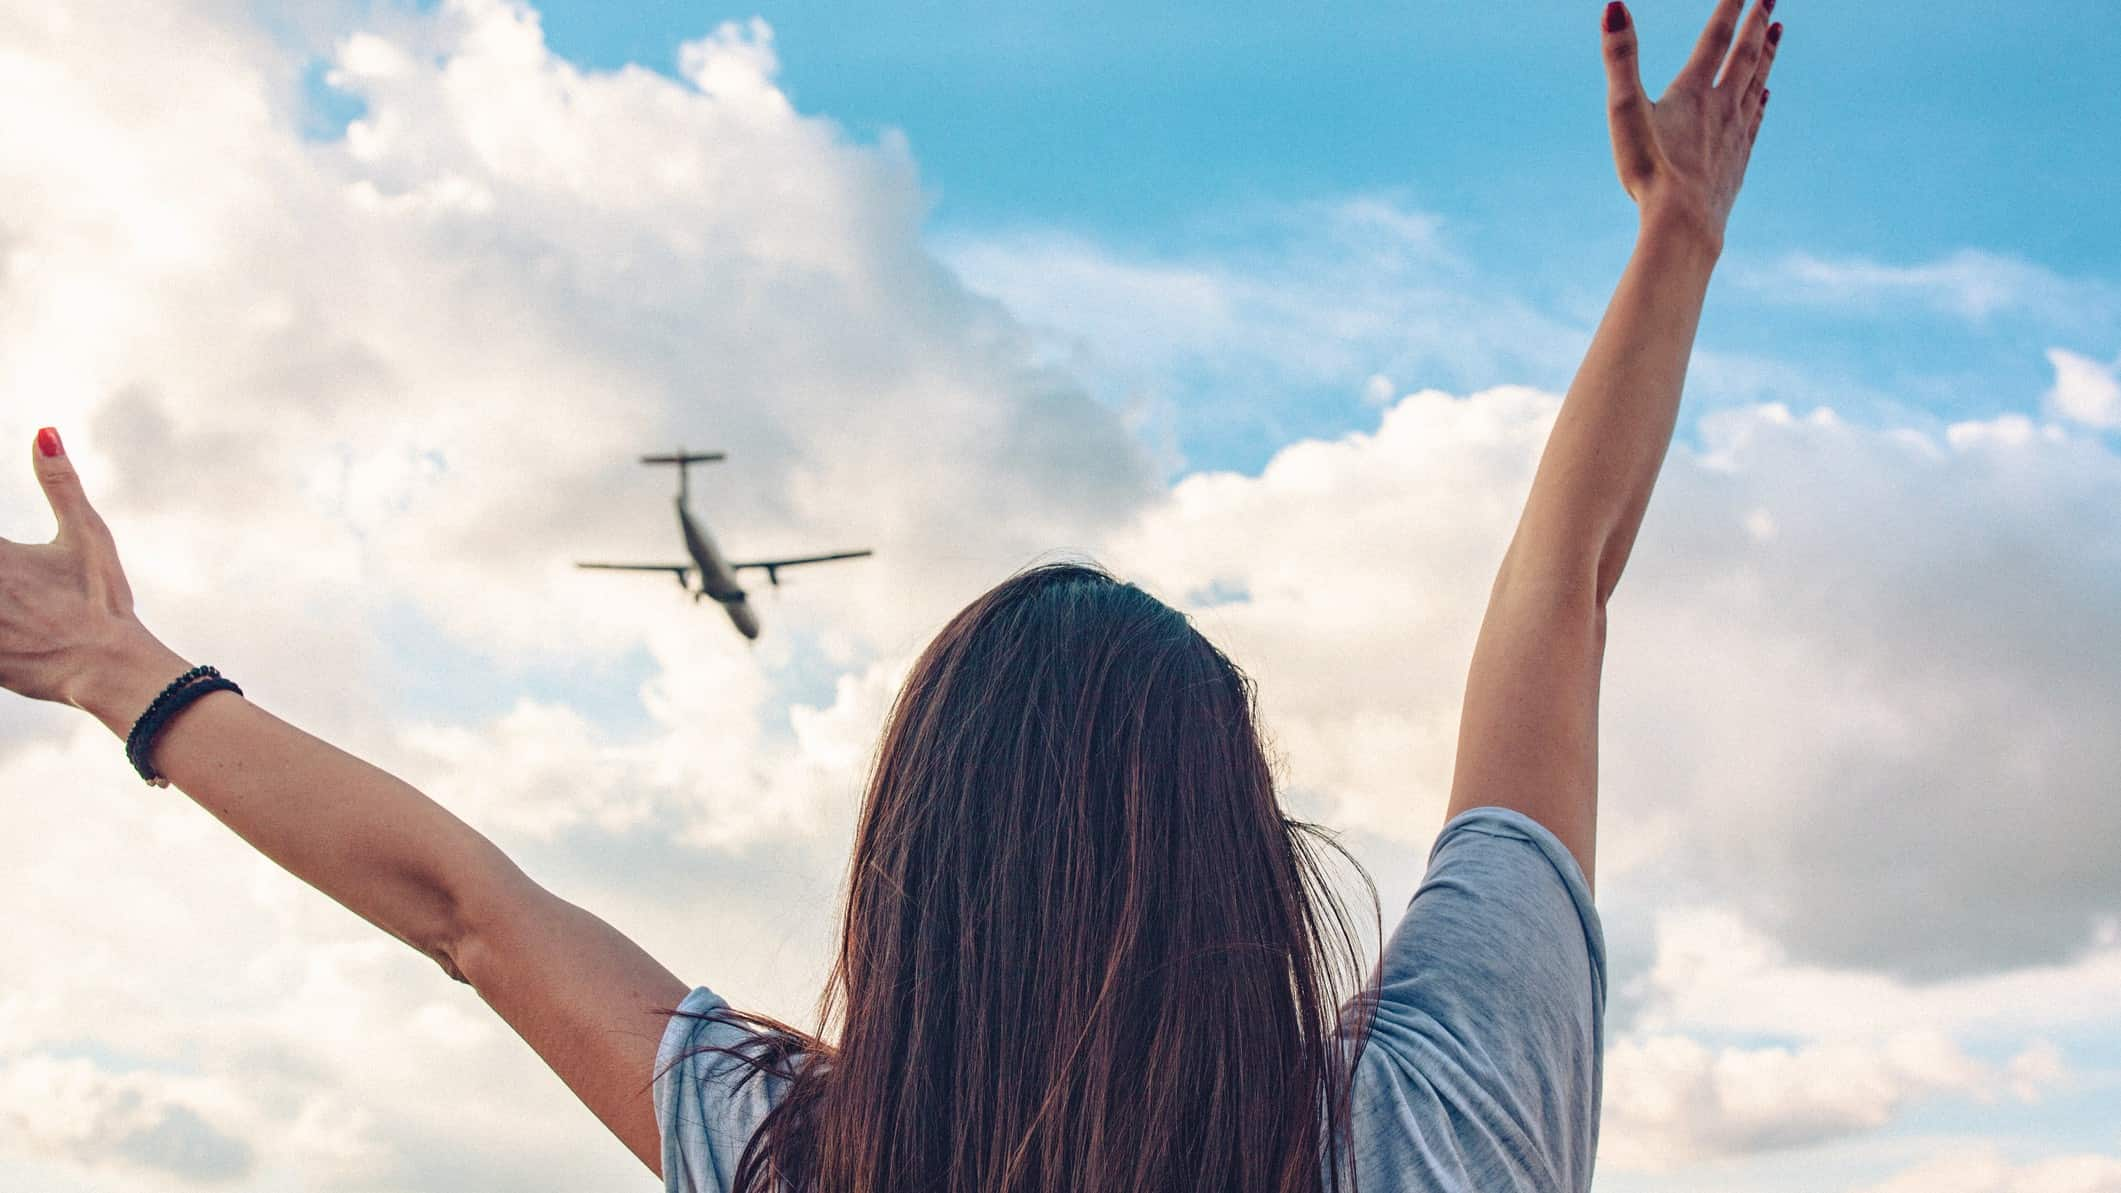 A woman looks up at a Qantas plane flying in the sky with arms outstretched.